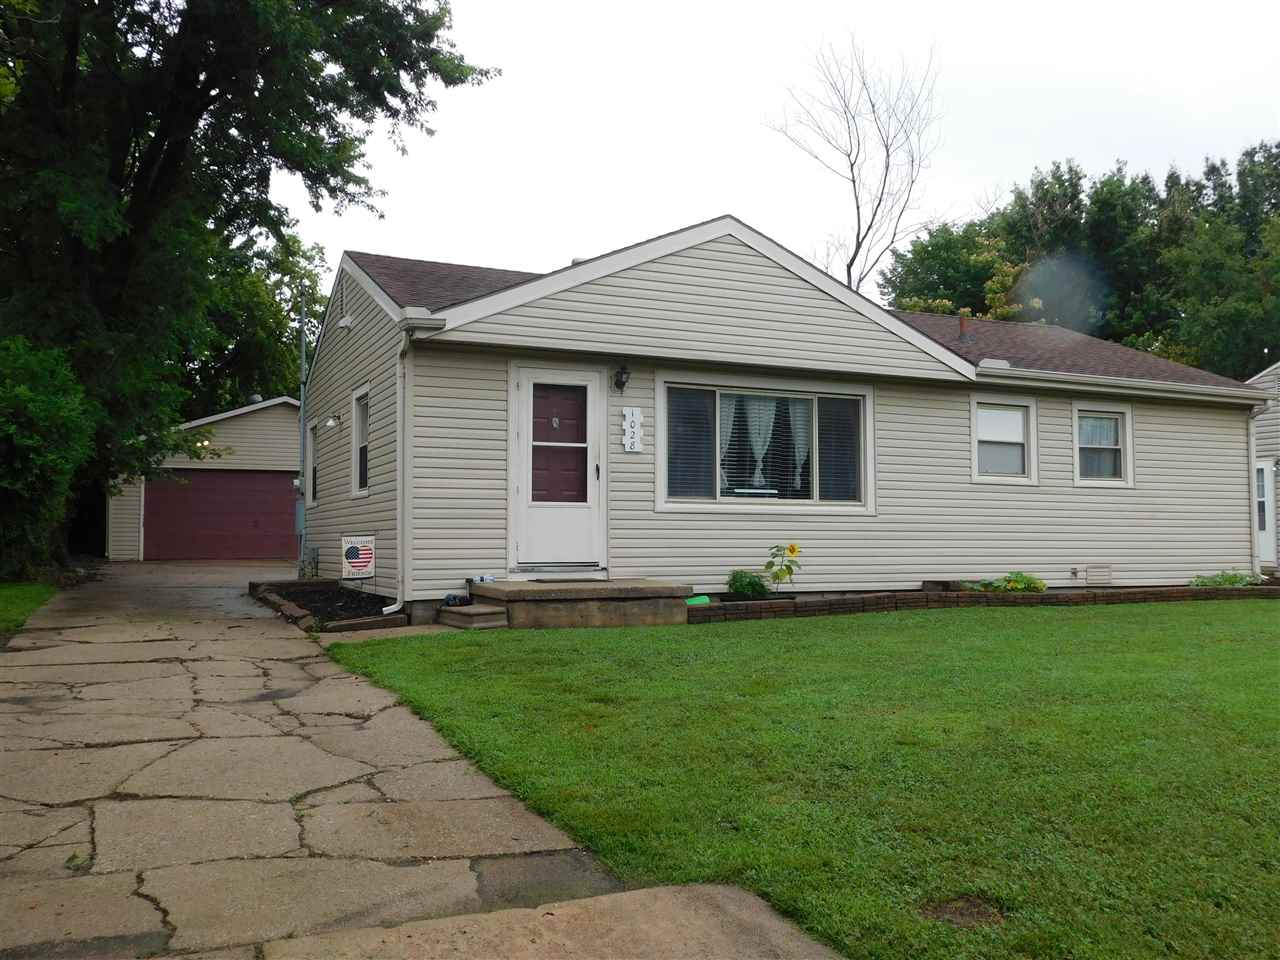 Small town living!! Adorable 3 BR, 1 Bath, turn key, move in ready home in a desirable location! Buy